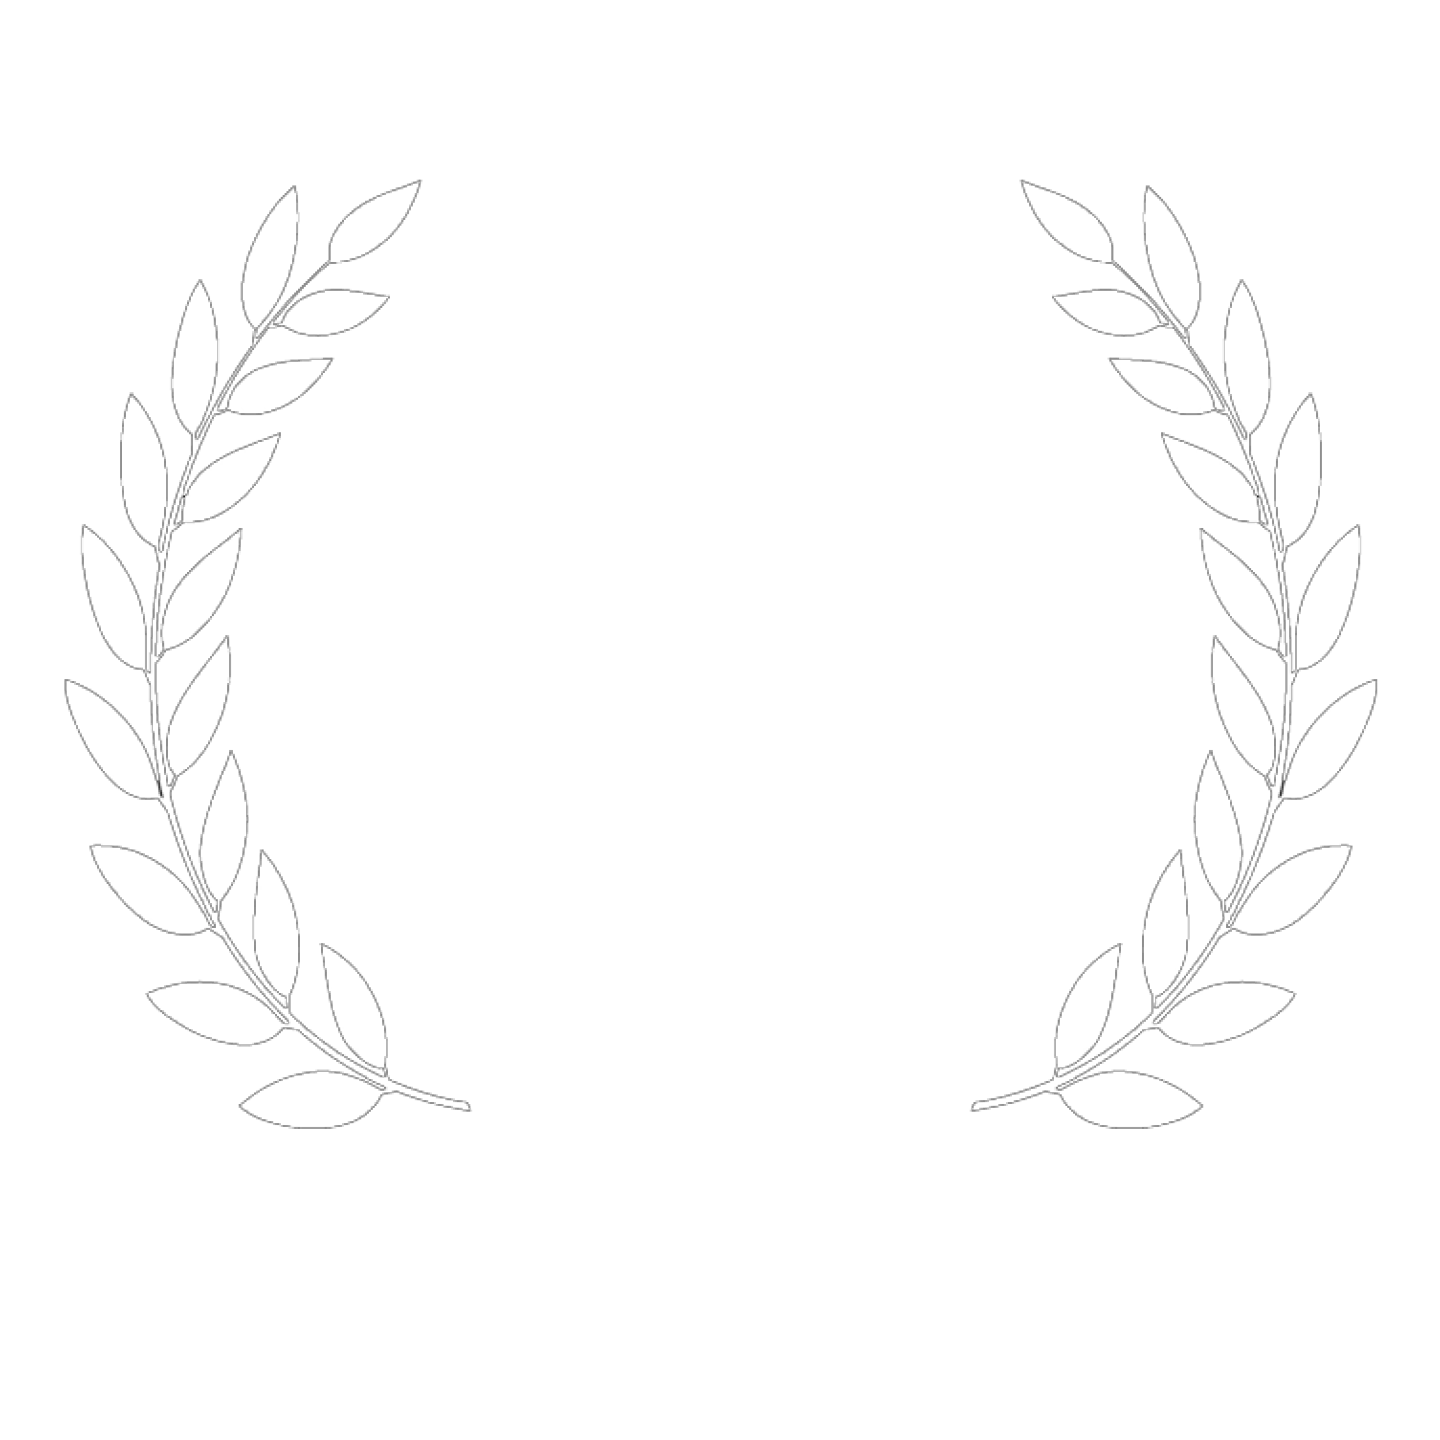 George Devine Award - Most Promising Playwright - Daniel Ward